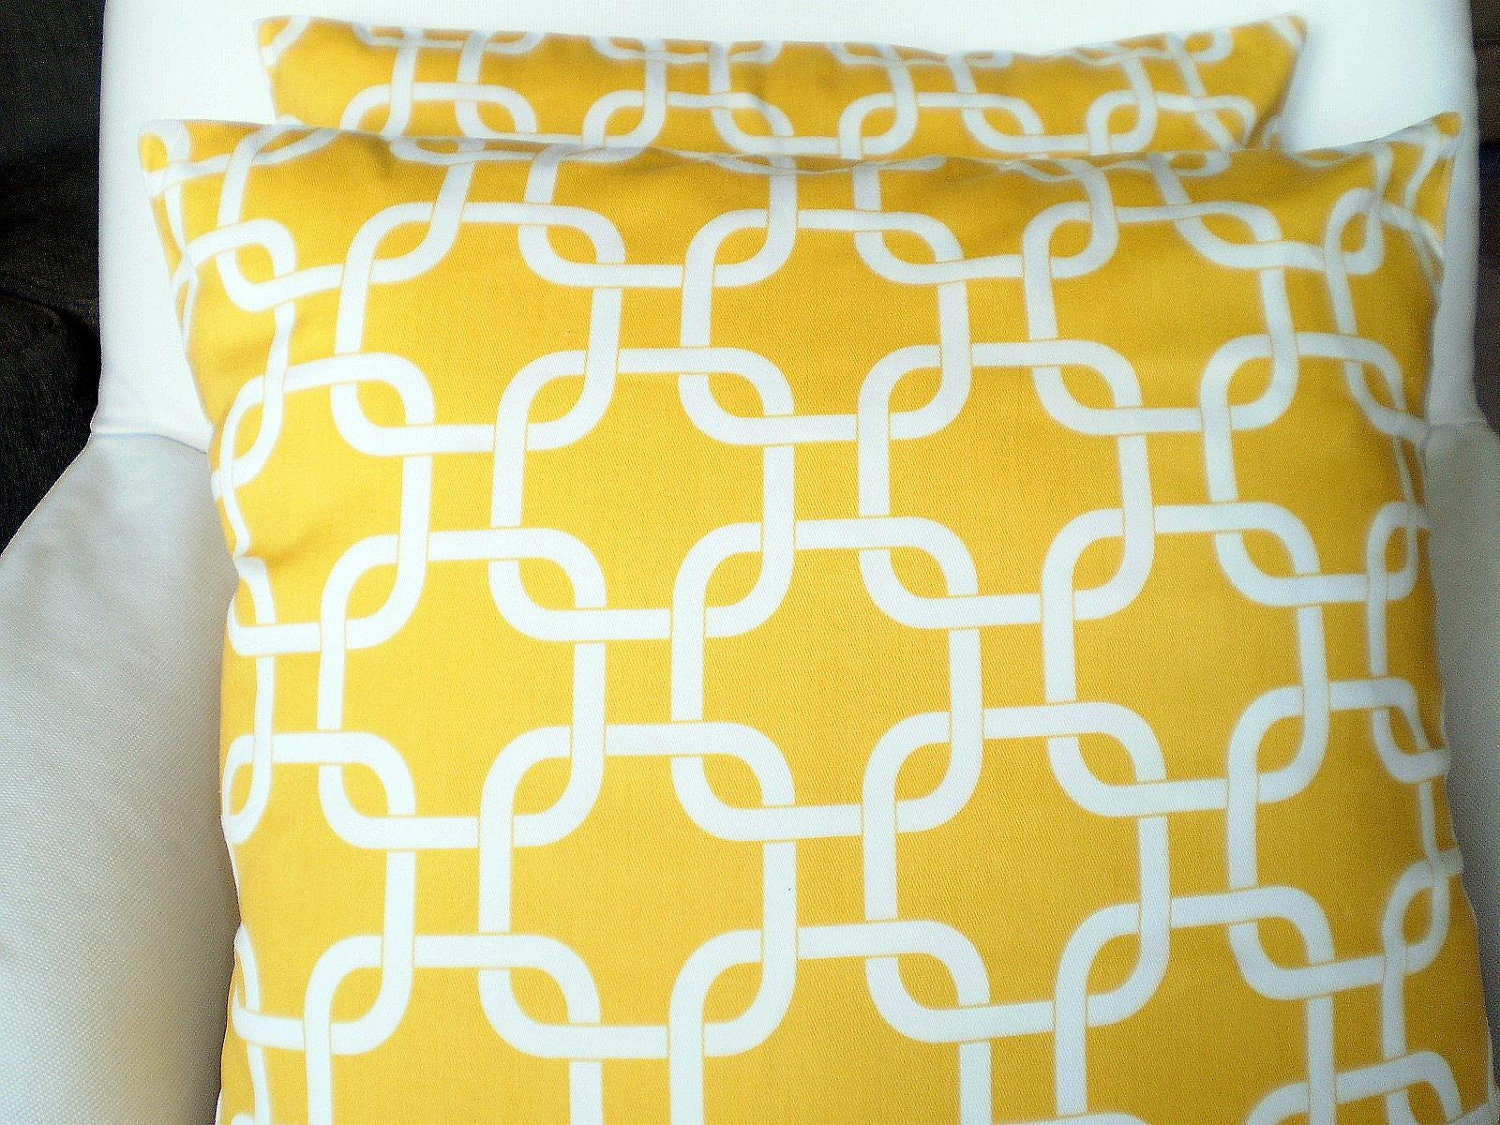 White Decorative Throw Pillow Covers : Yellow White Pillow Covers Decorative Throw by fabricjunkie1640